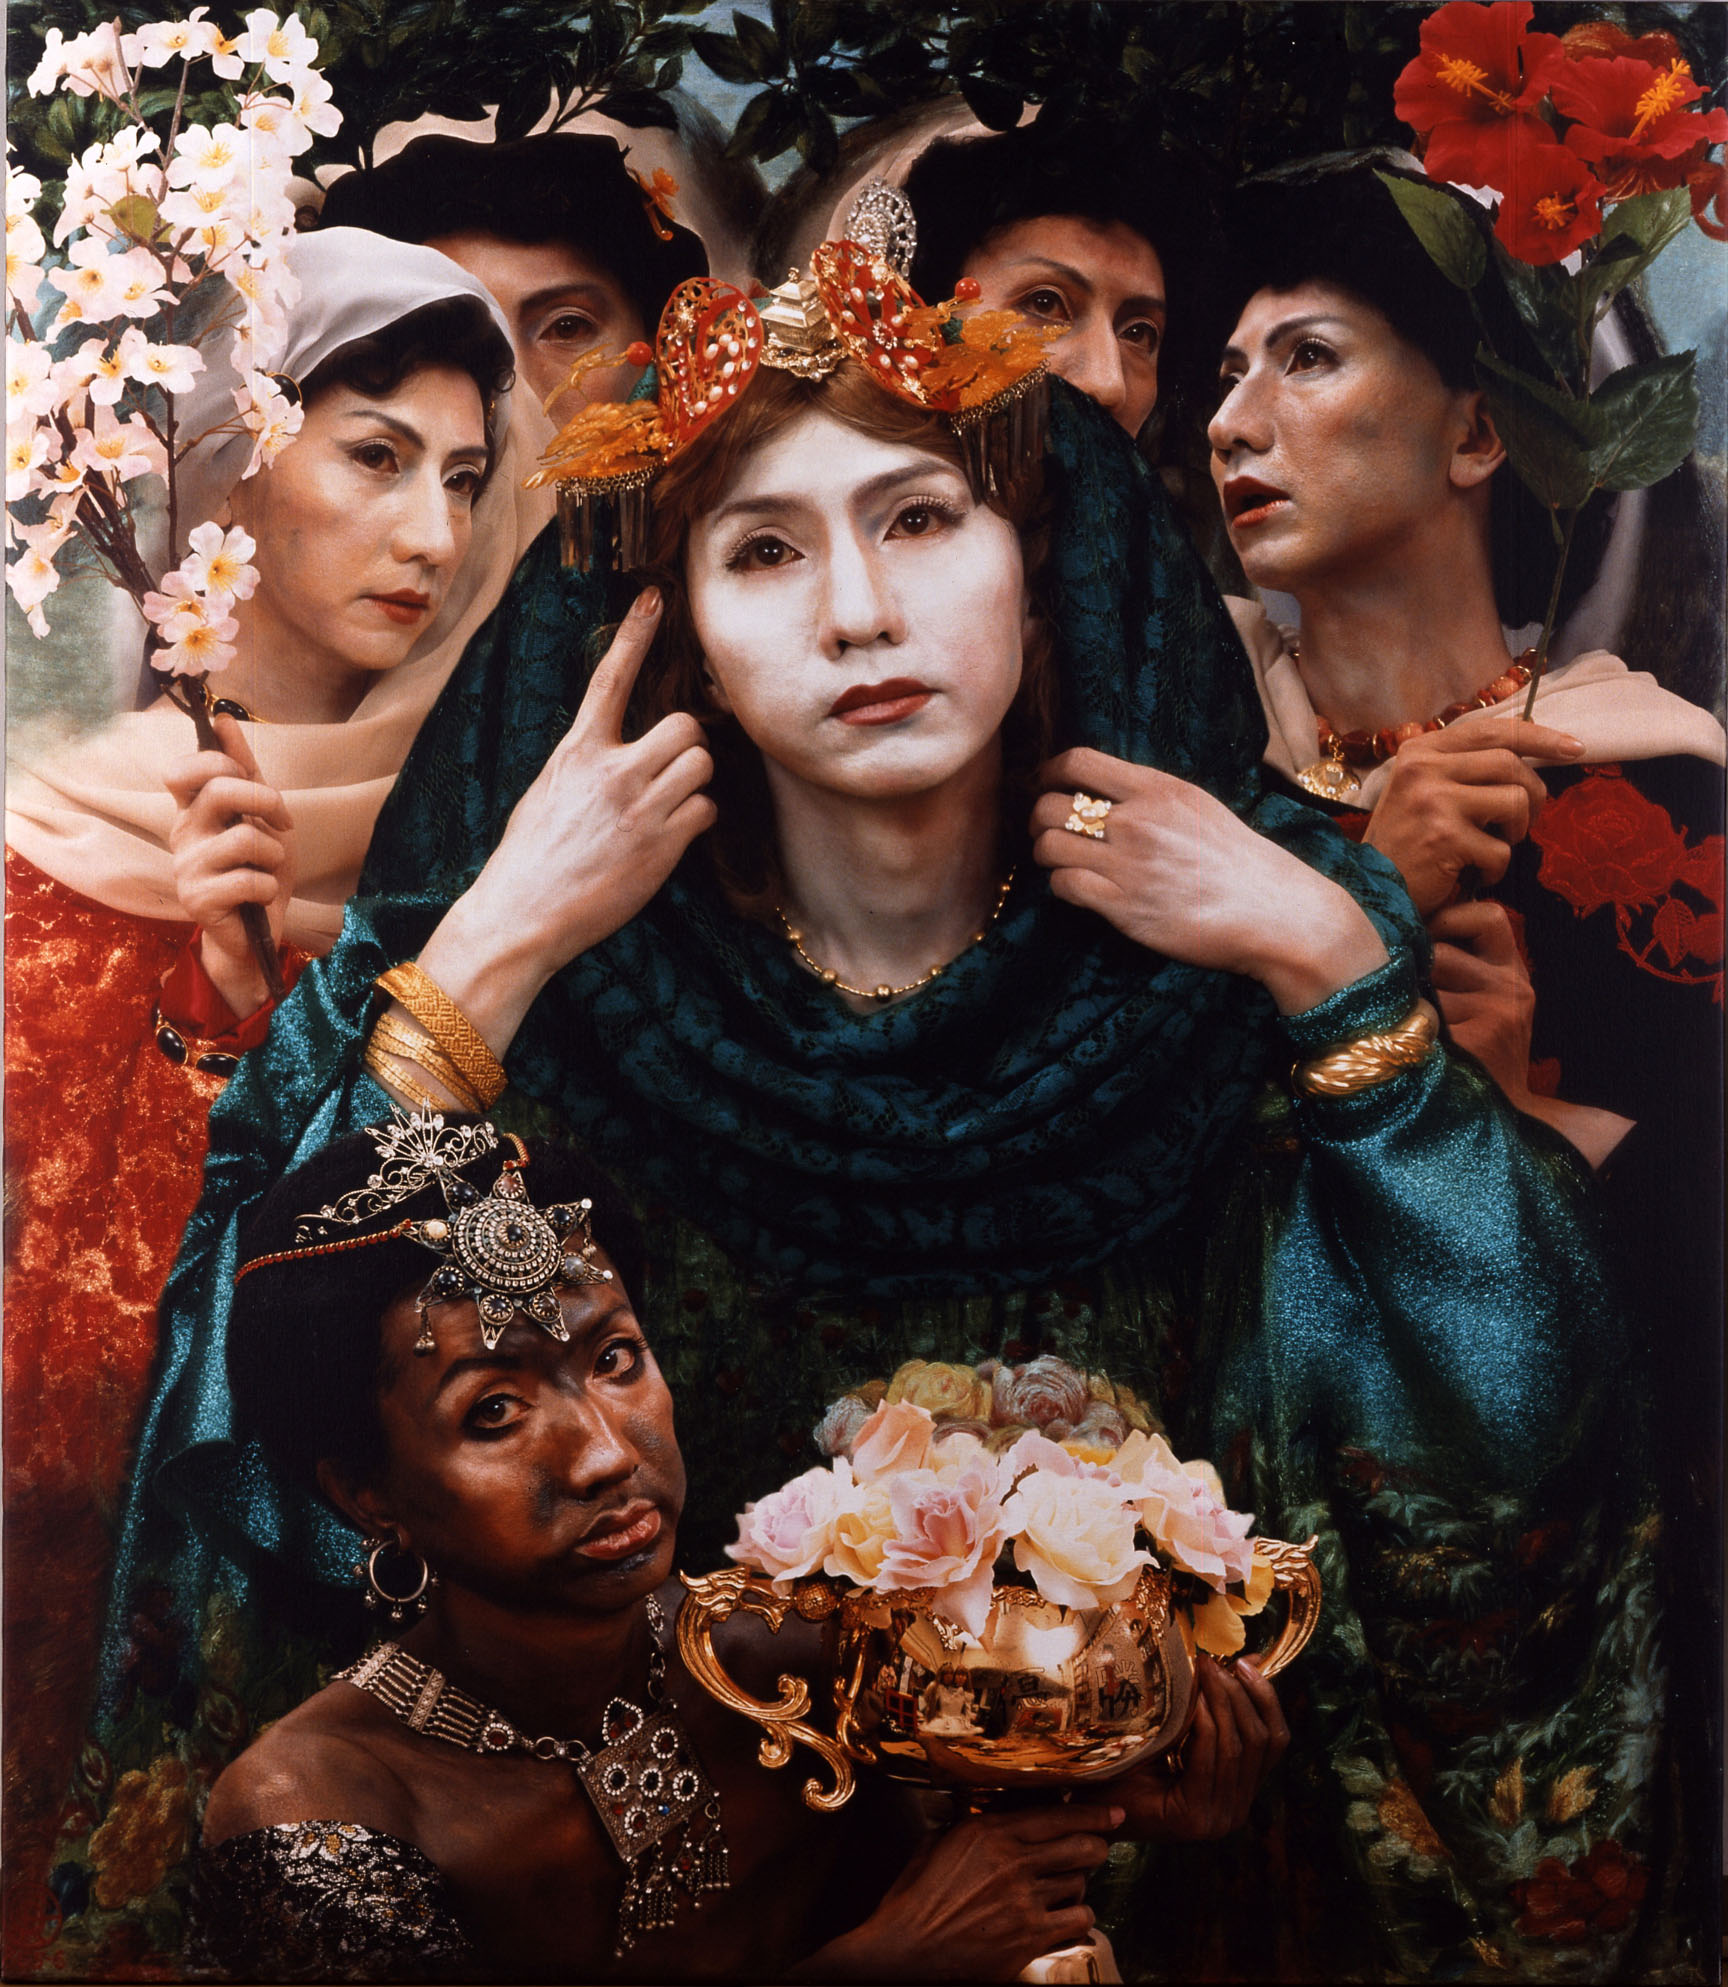 'Six Brides' (1991) by Yasumasa Morimura | THE MUSEUM OF MODERN ART, SHIGA